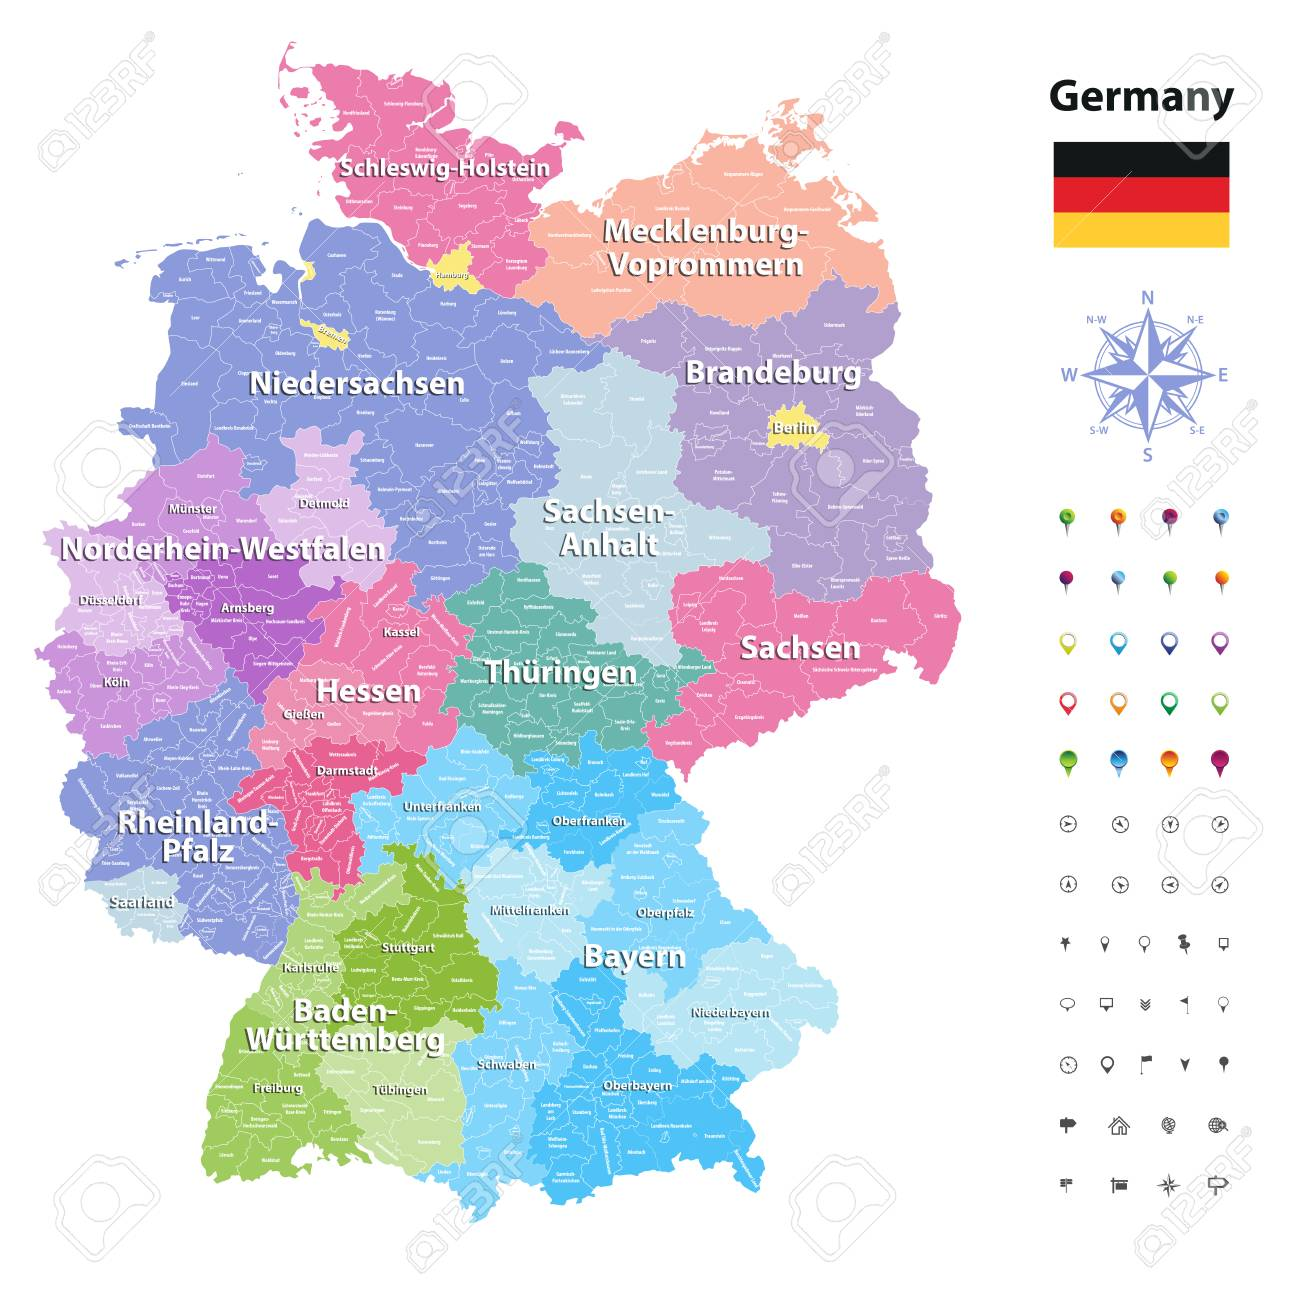 Germany vector map (colored by states and administrative districts)..